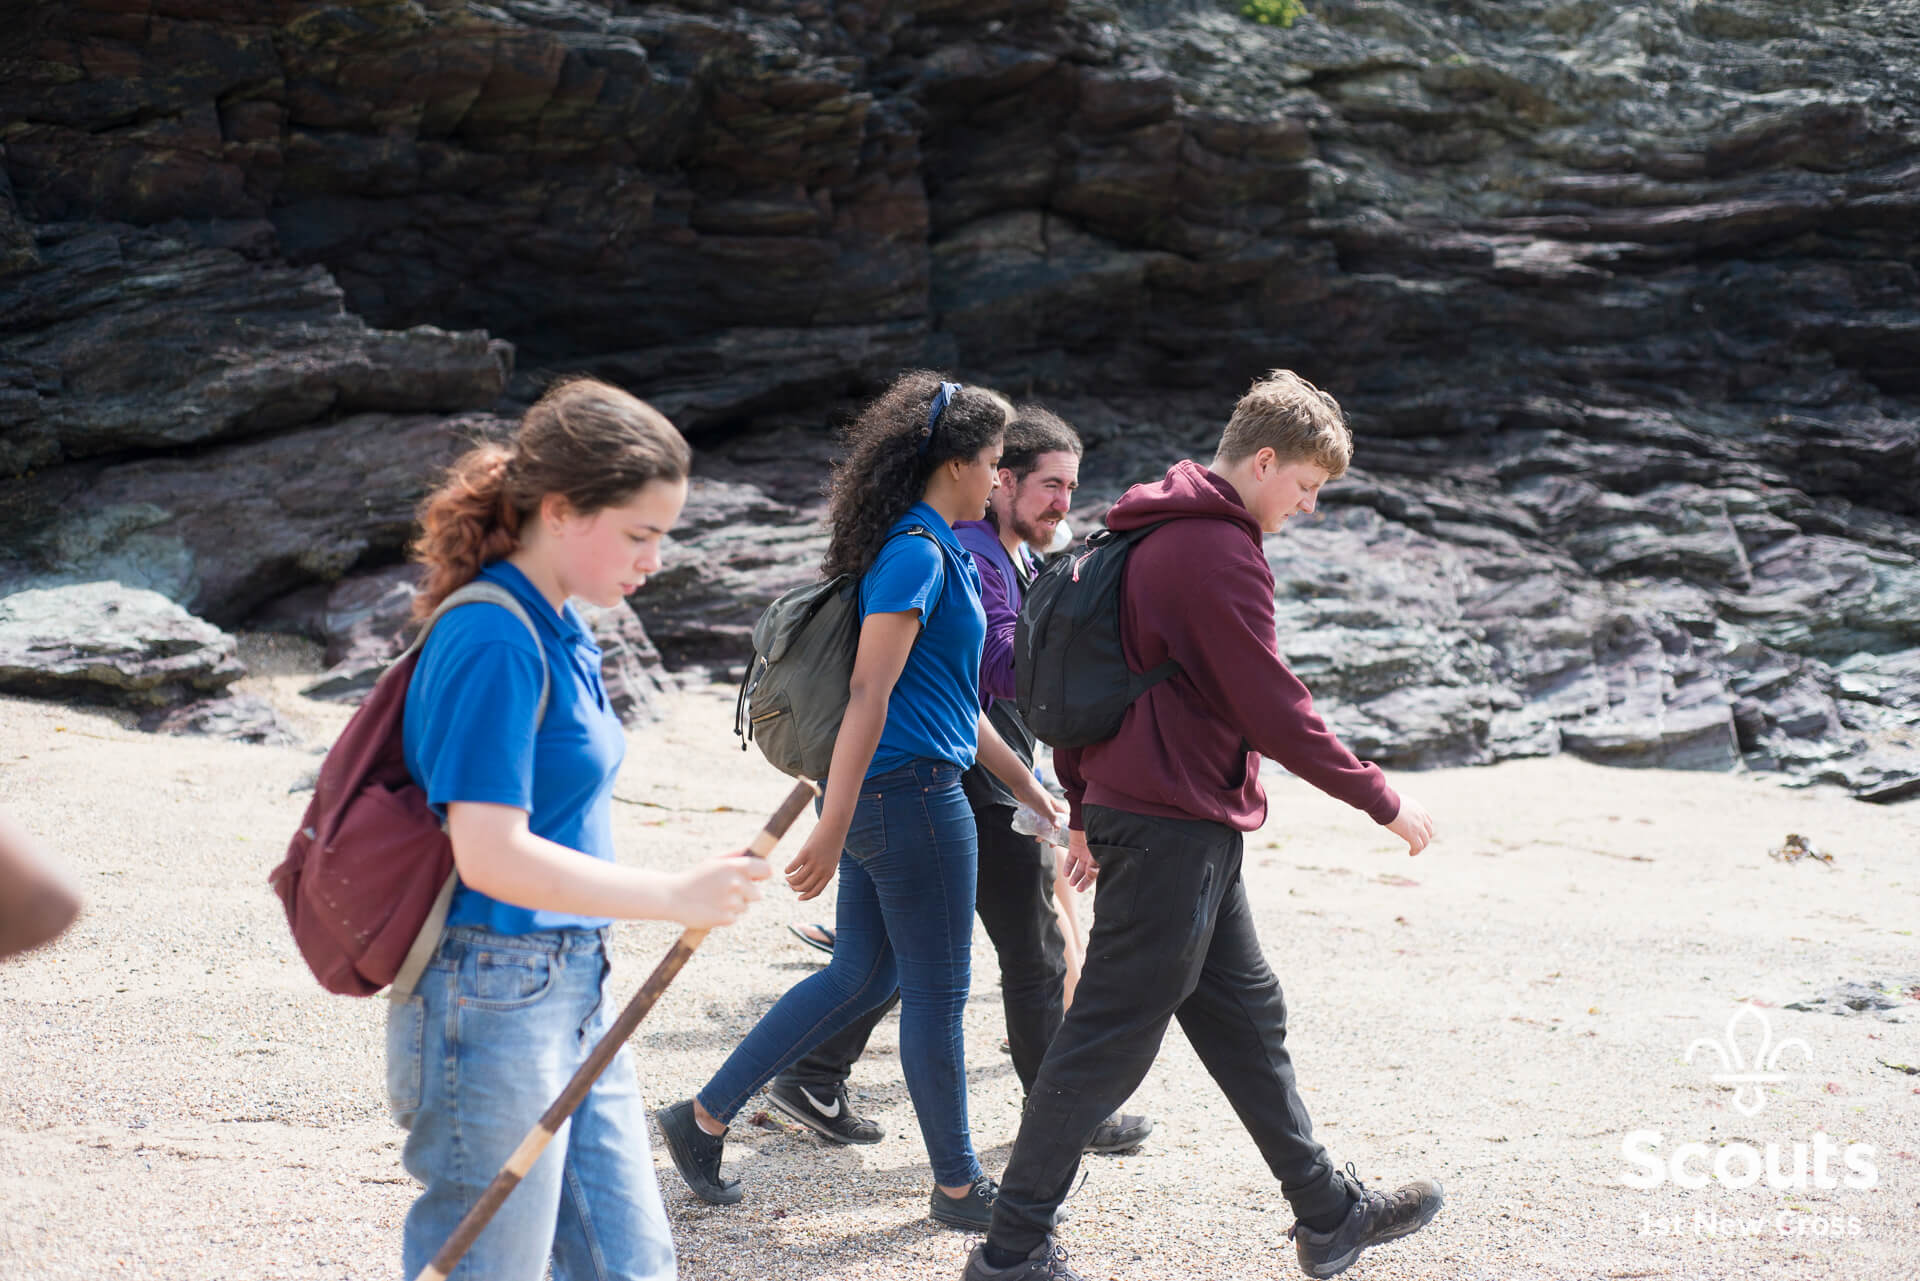 Explorer Scouts – 14 to 18 years